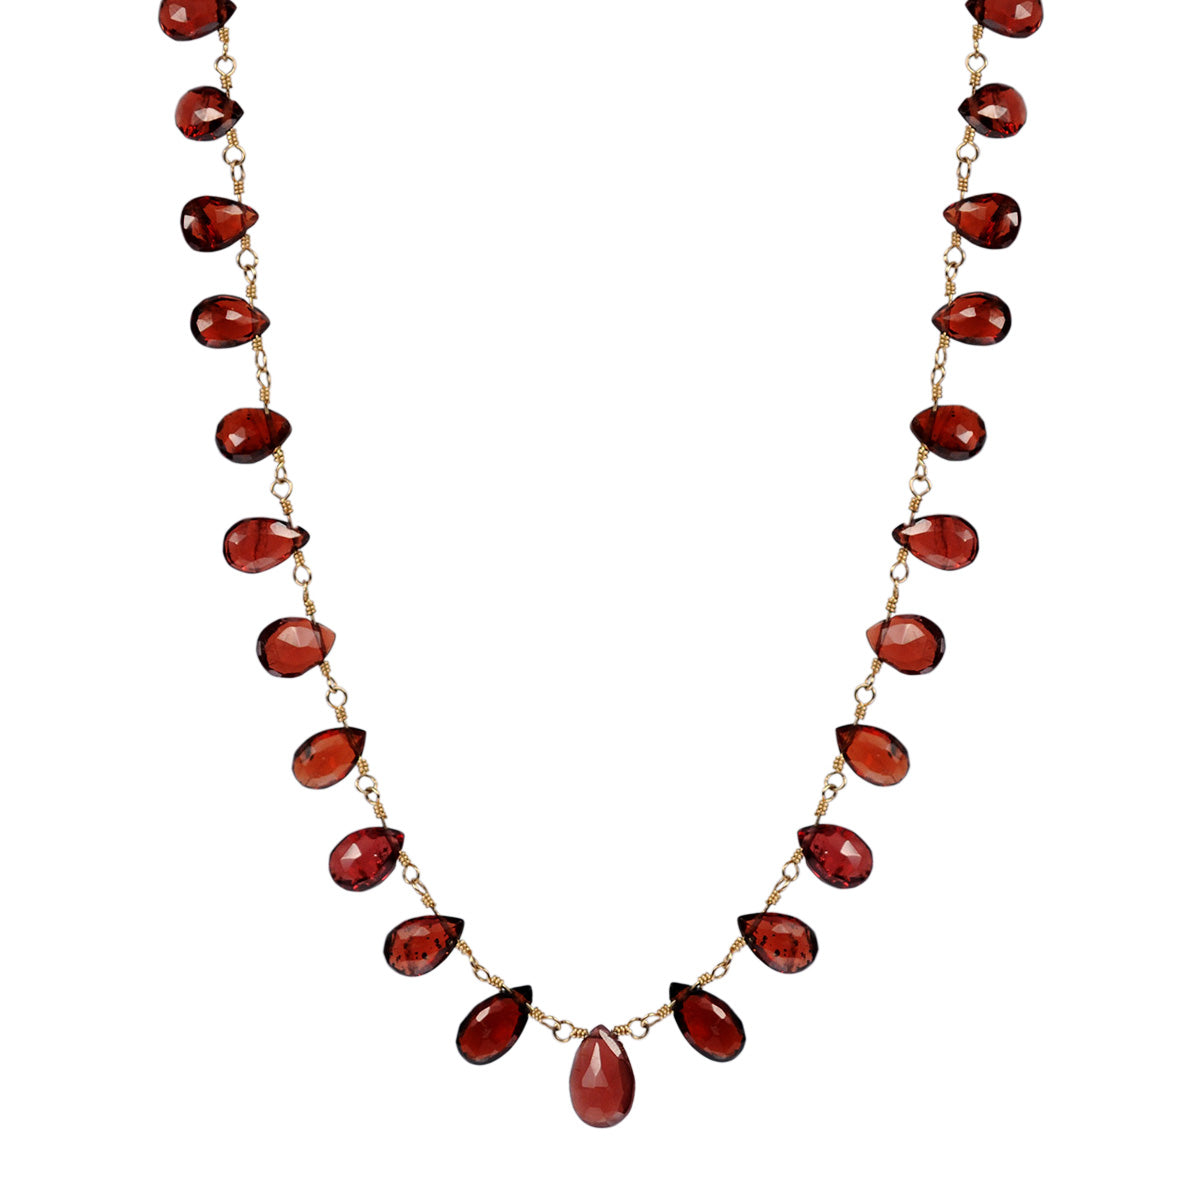 10K Gold Medium Garnet Teardrop Necklace